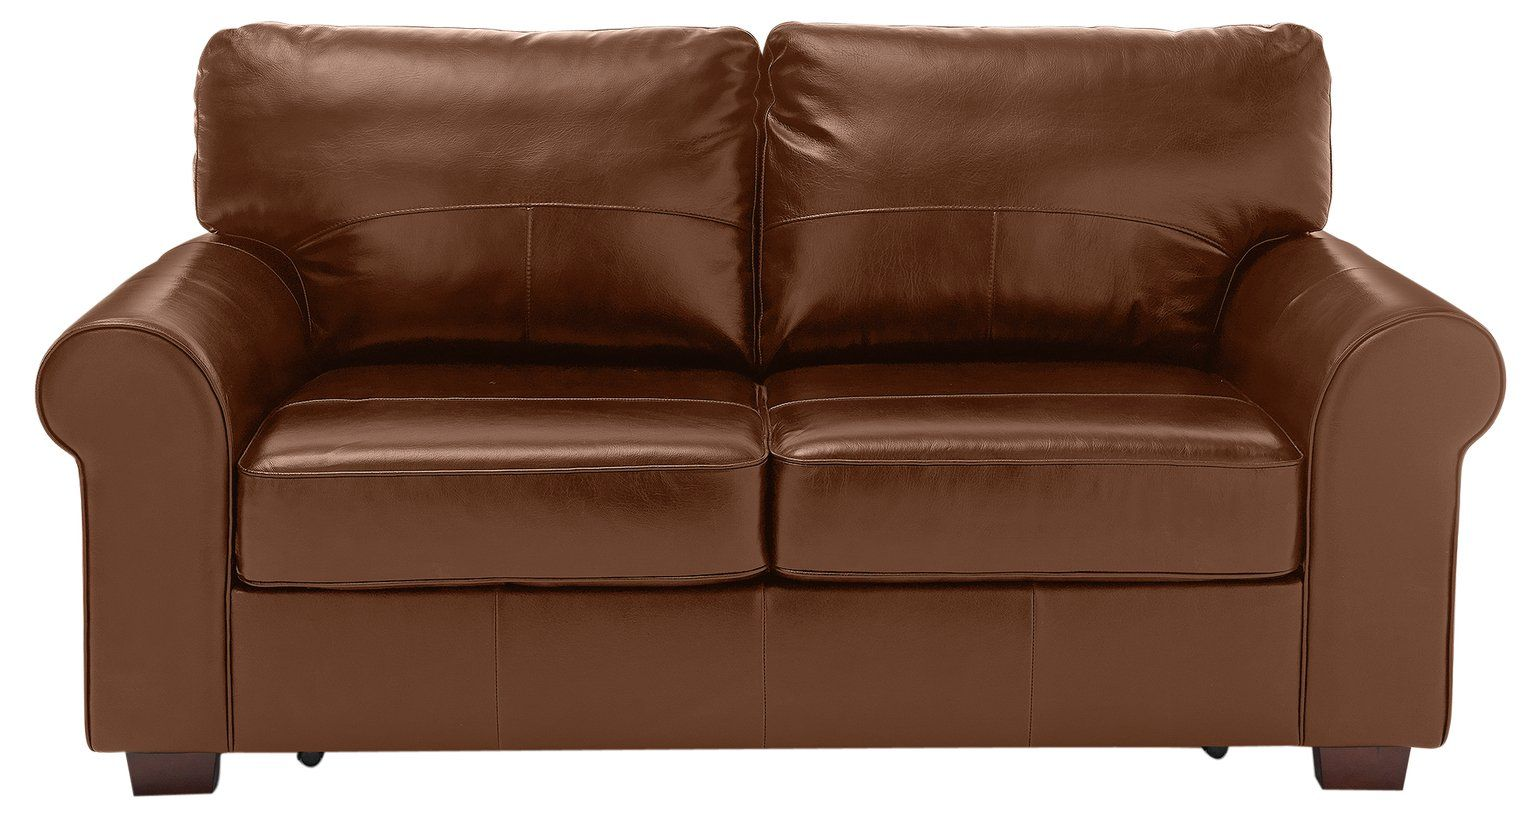 Argos Home Salisbury 2 Seater Leather Sofa Bed Tan in